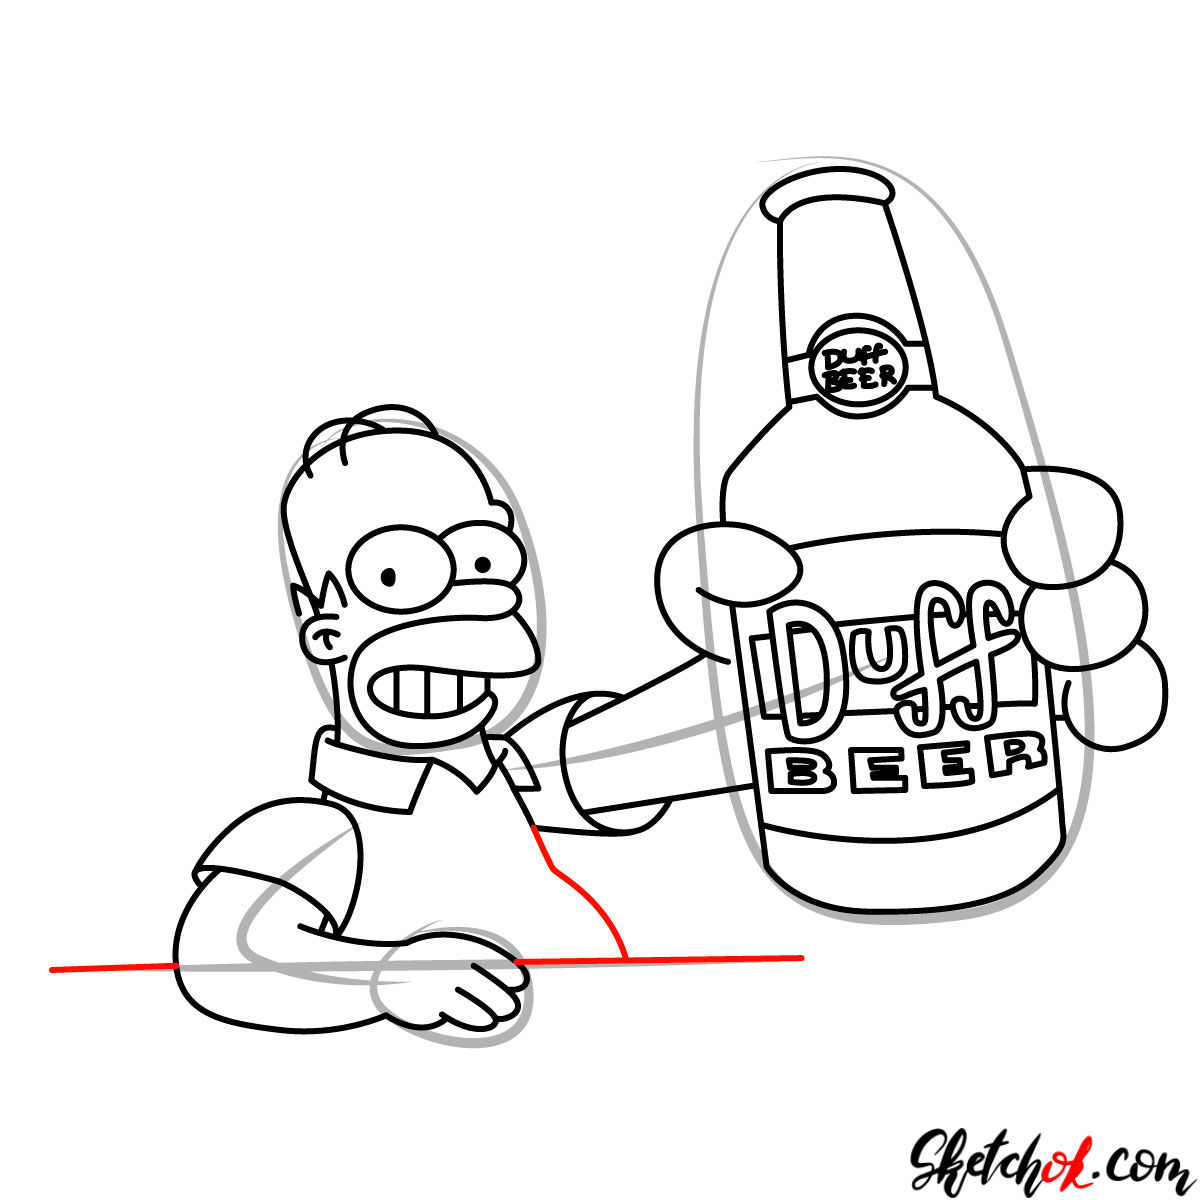 How to draw Homer with a Duff beer bottle - step 10